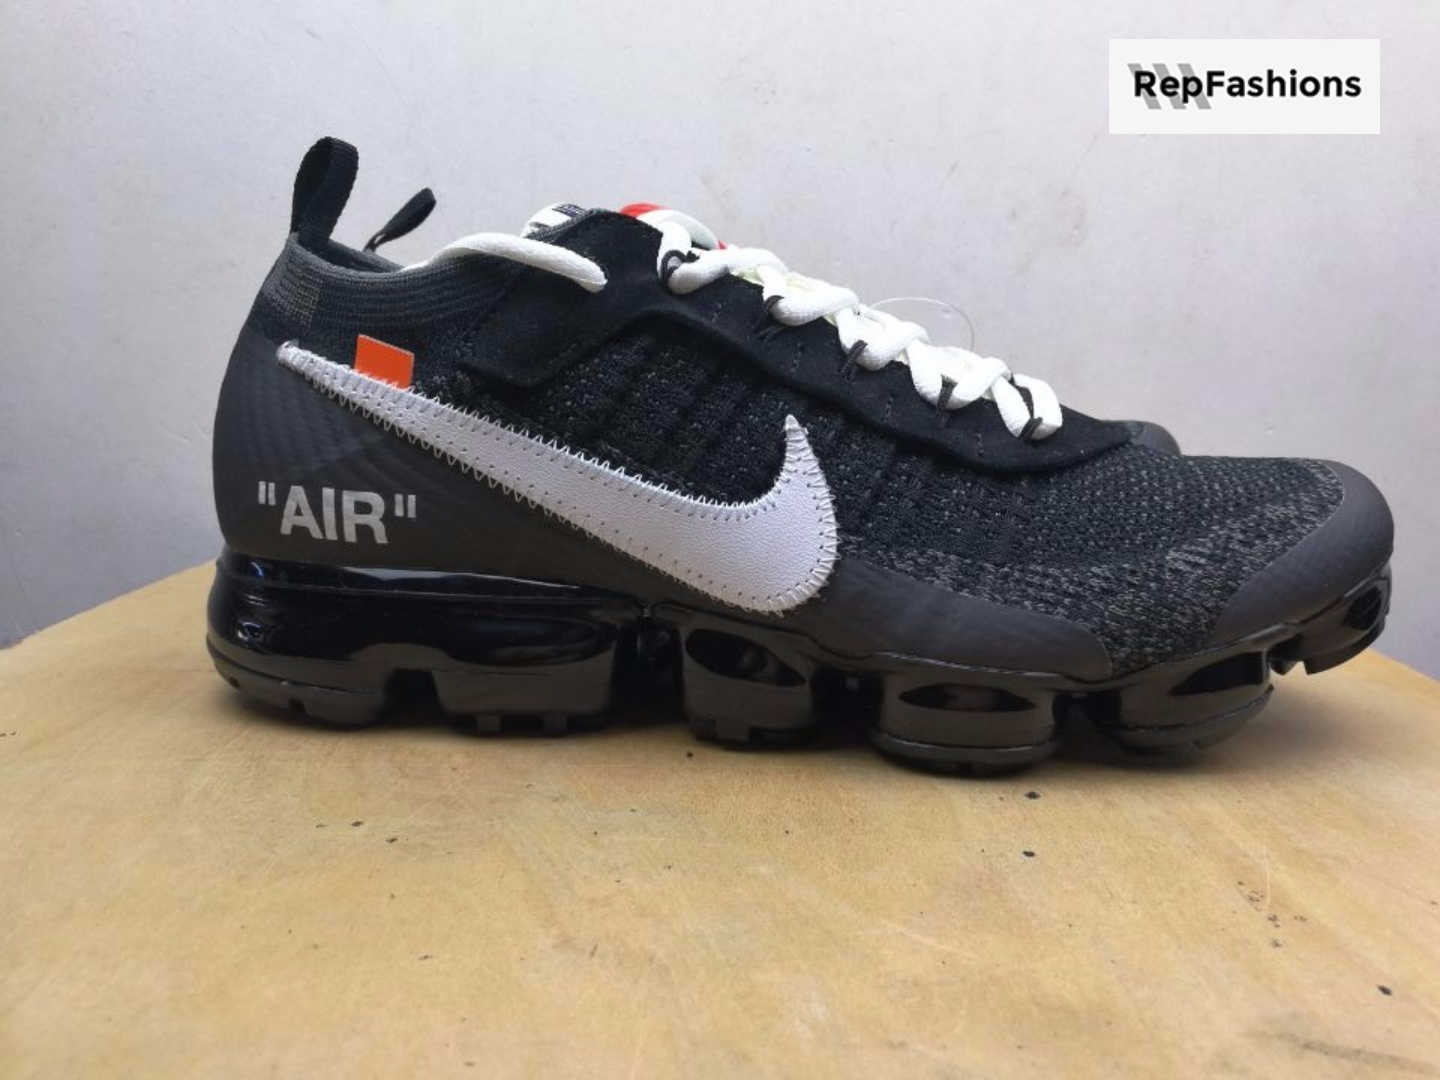 sports shoes 299f3 c45a3 Best Cheap Rep Off White x NK Air Vapormax - High Quality For Sale —  RepFashions